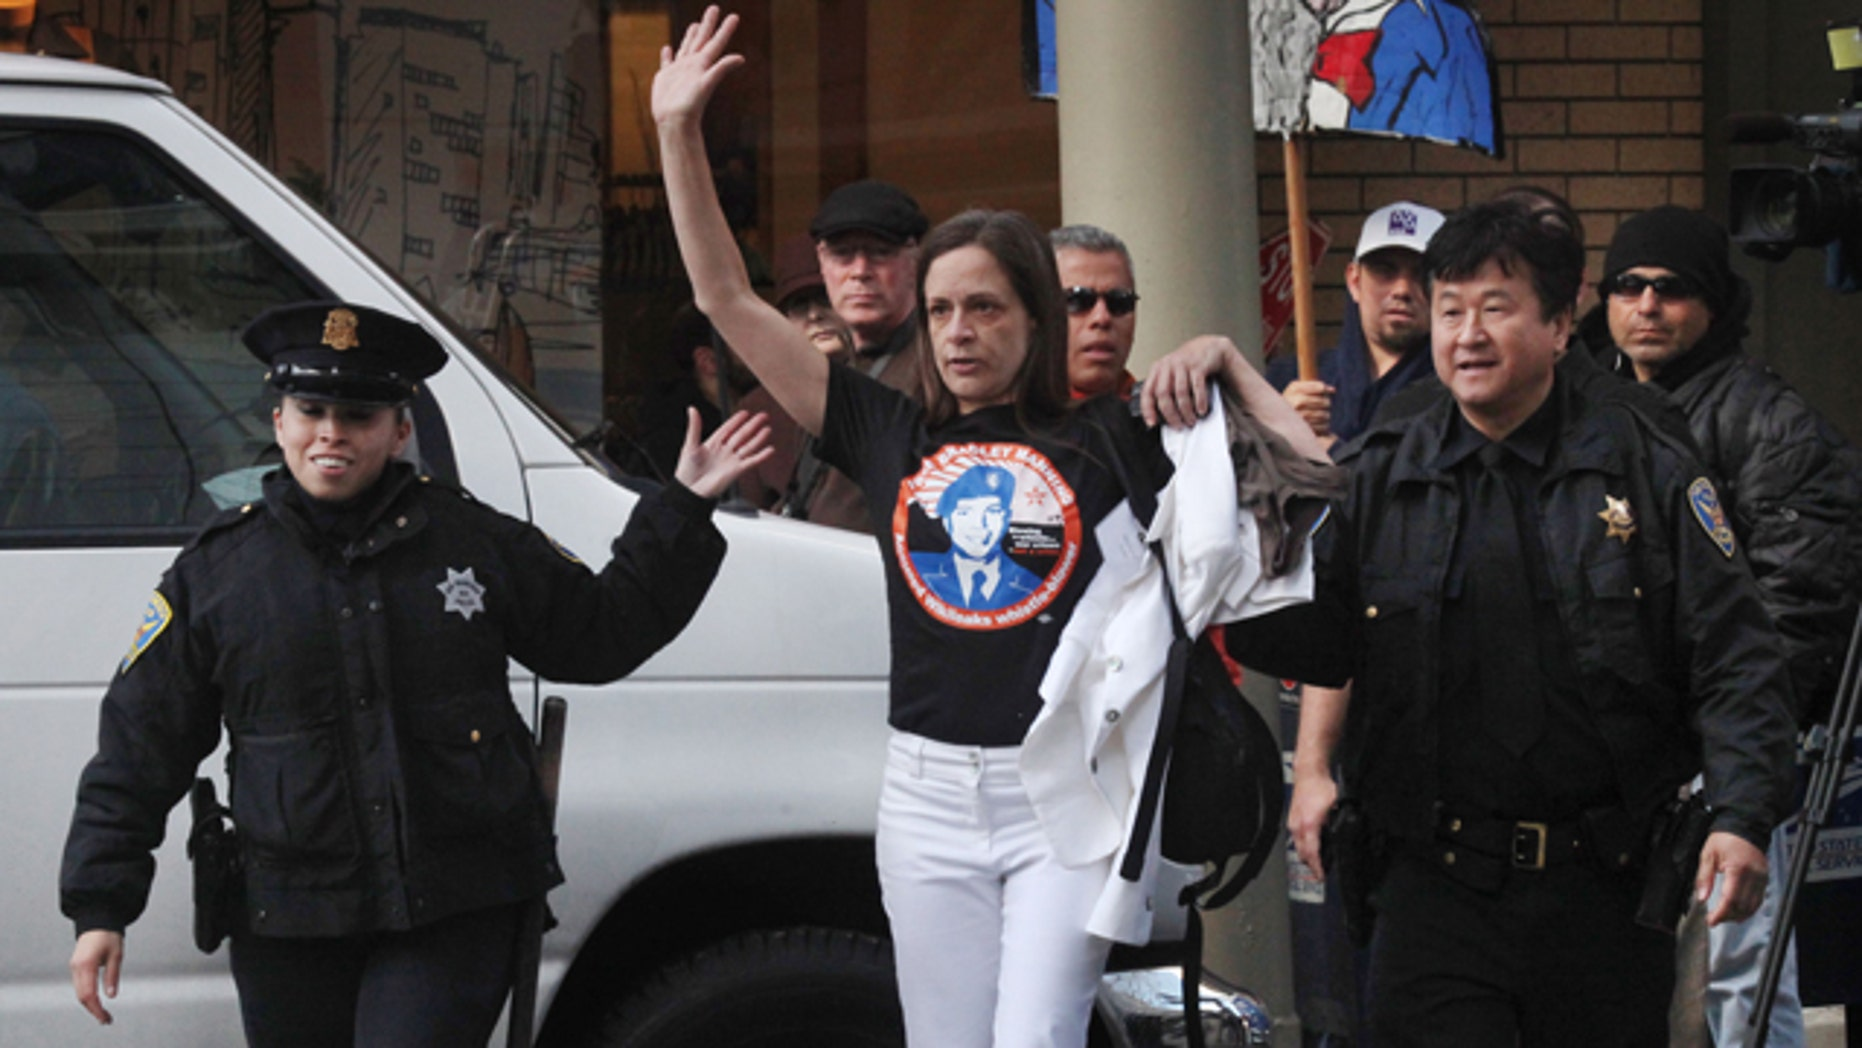 April 21: Naomi Pitcairn of Oakland is escorted by San Francisco Police Officers after protesting at a fundraiser fro President Barack Obama at the St. Regis in San Francisco, Calif.